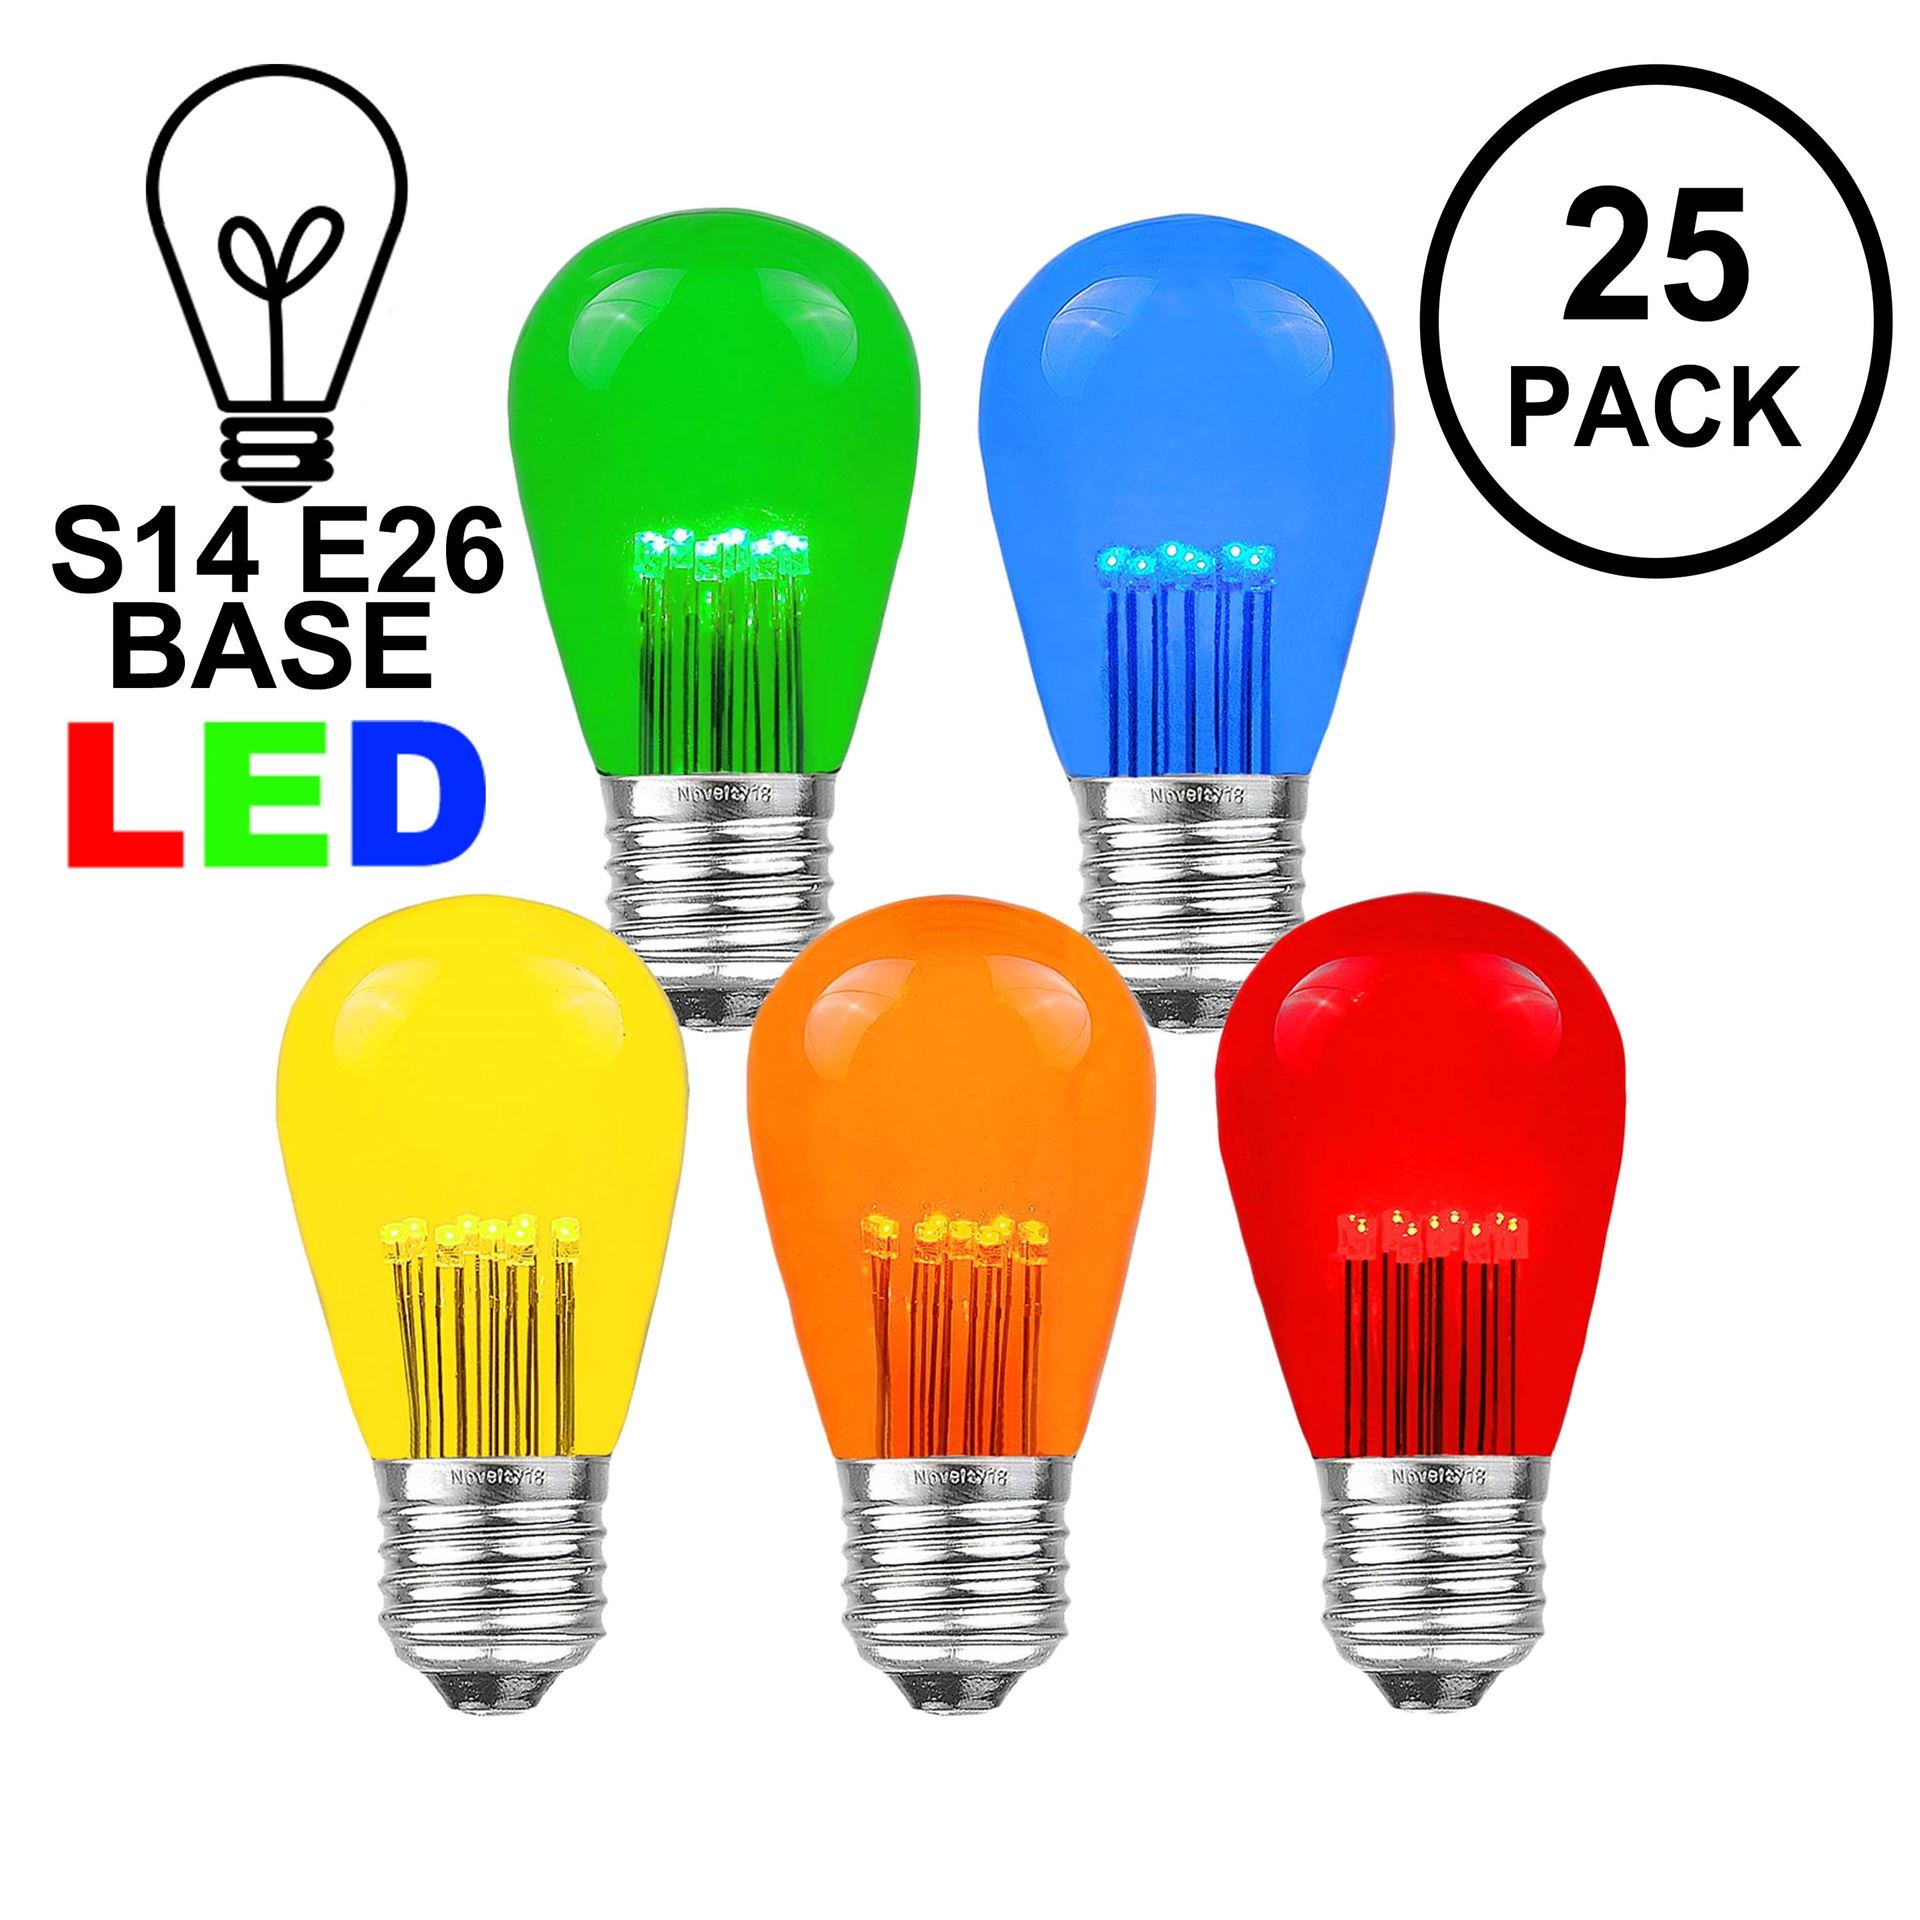 Picture of Multi S14 LED Medium Base e26 Bulbs w/ 9 LEDs - 25pk